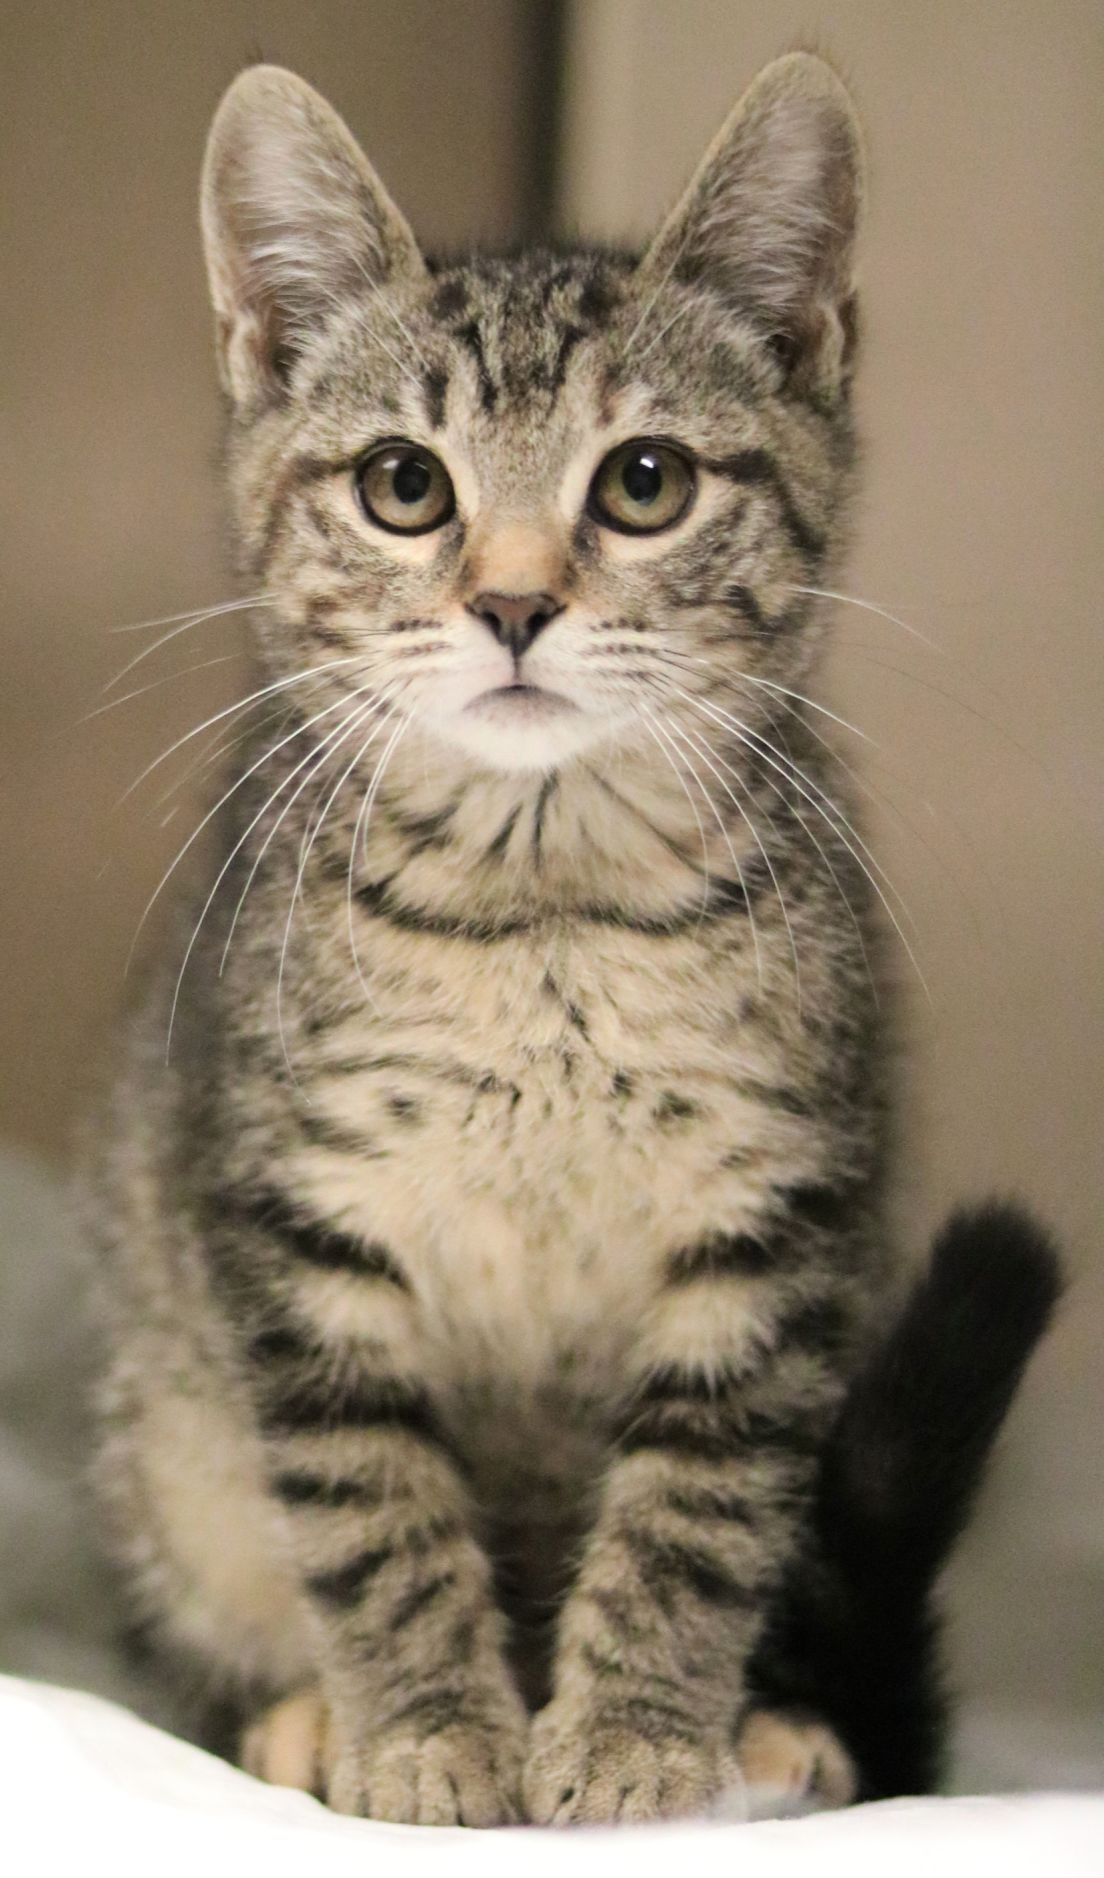 SJ Cat of the Week - September 4, 2019 edition